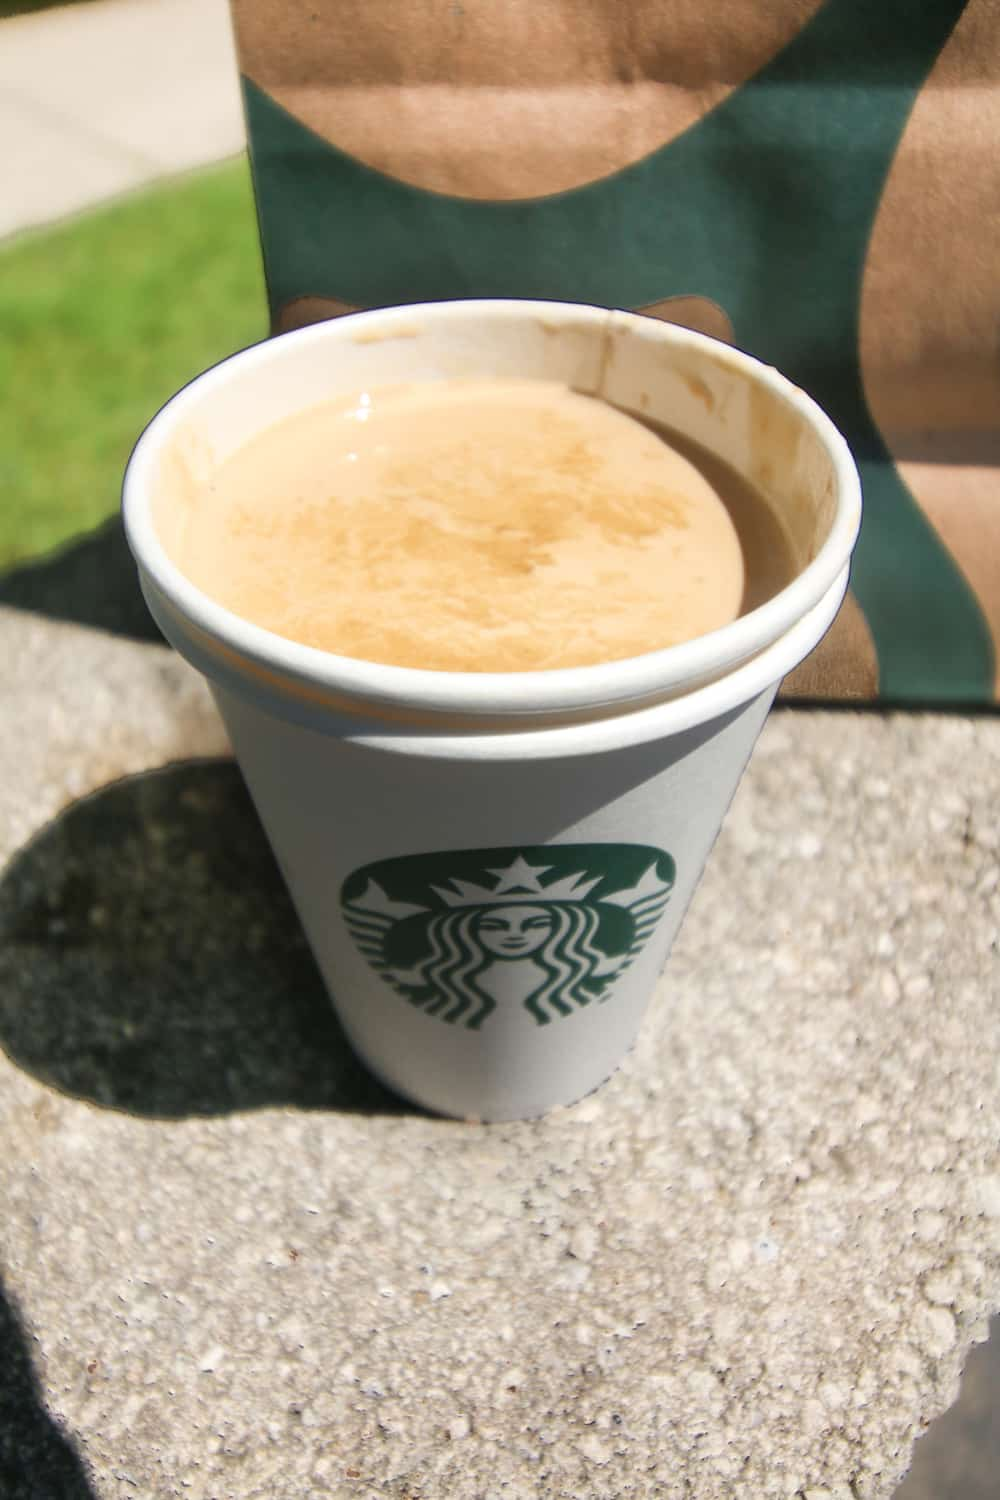 Espresso mixed with cream in a cup.